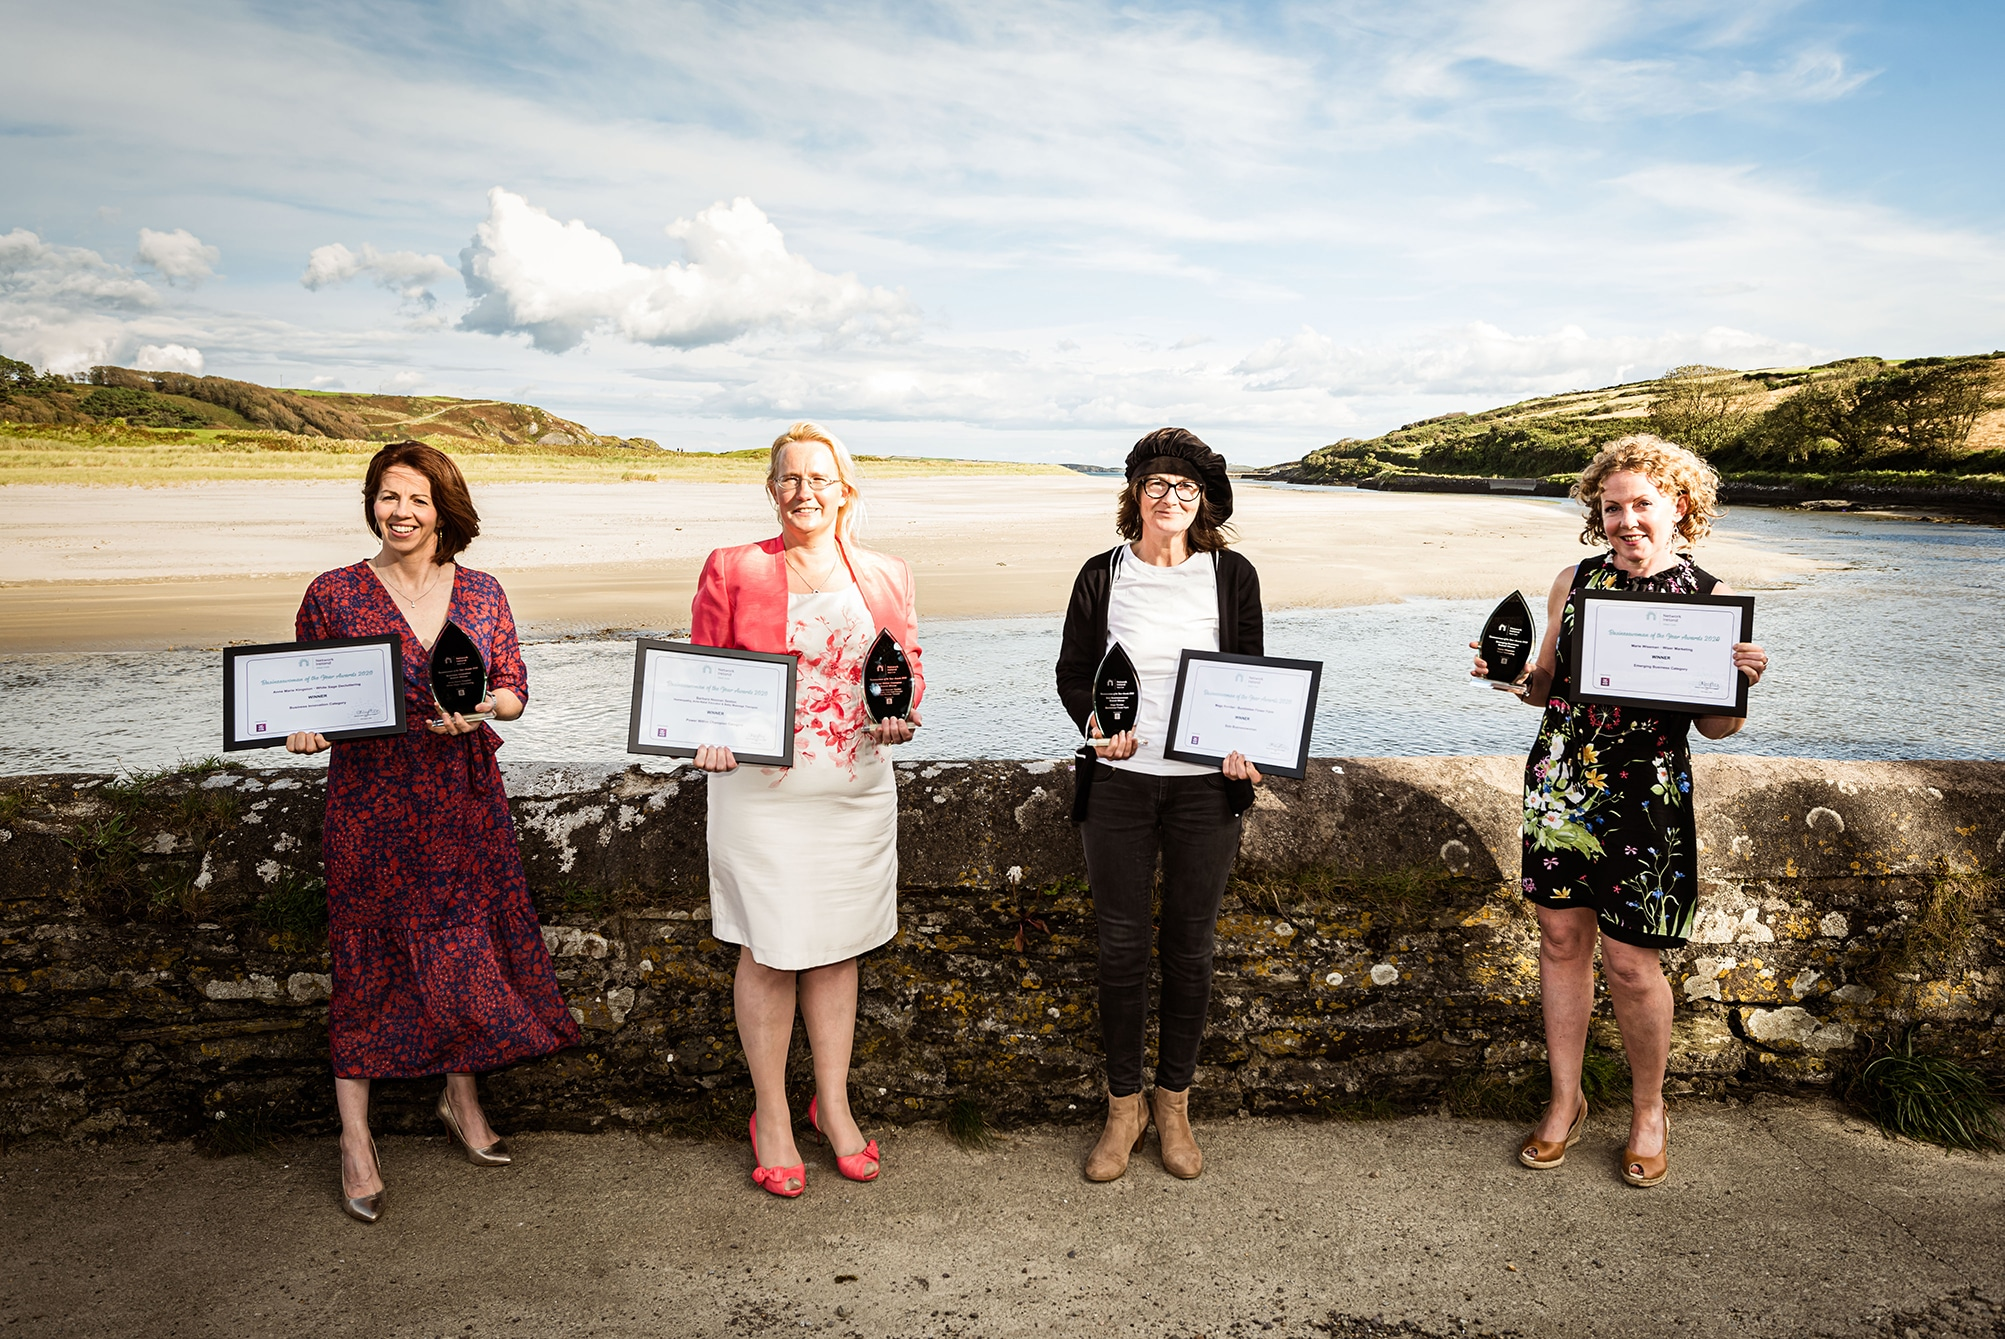 2020 Businesswoman of the Year winners announced at Network Ireland West Cork Virtual Awards ceremony